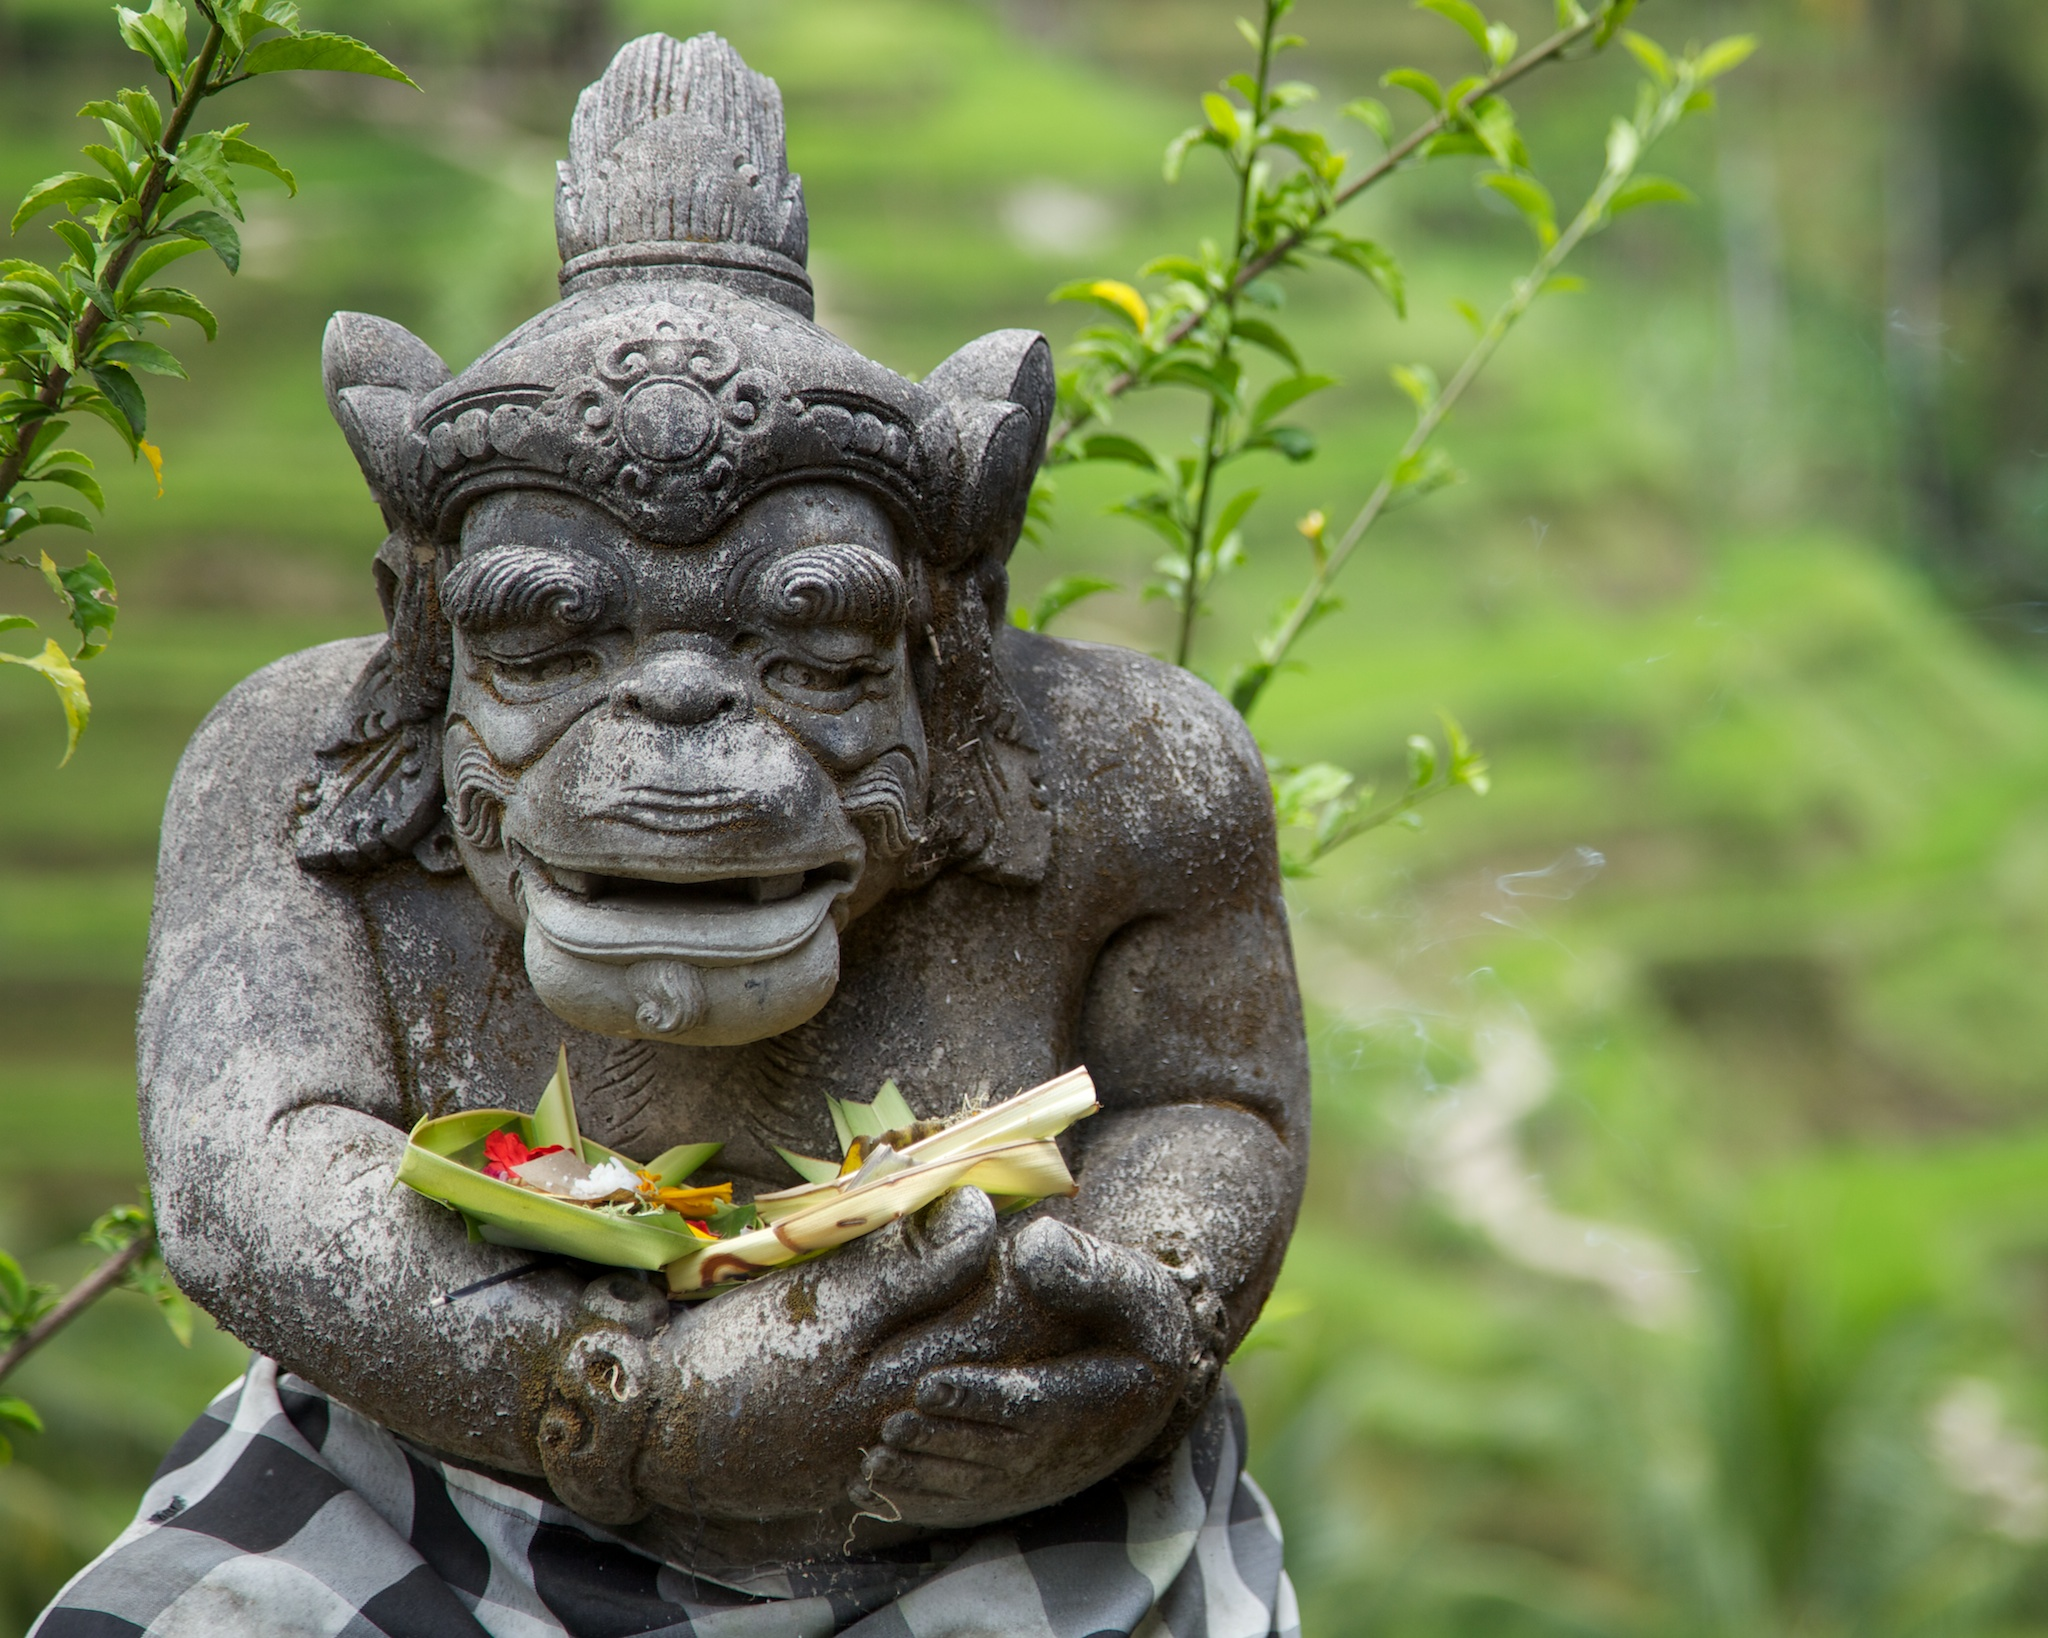 As I said, the statues and offerings were everywhere around Bali.